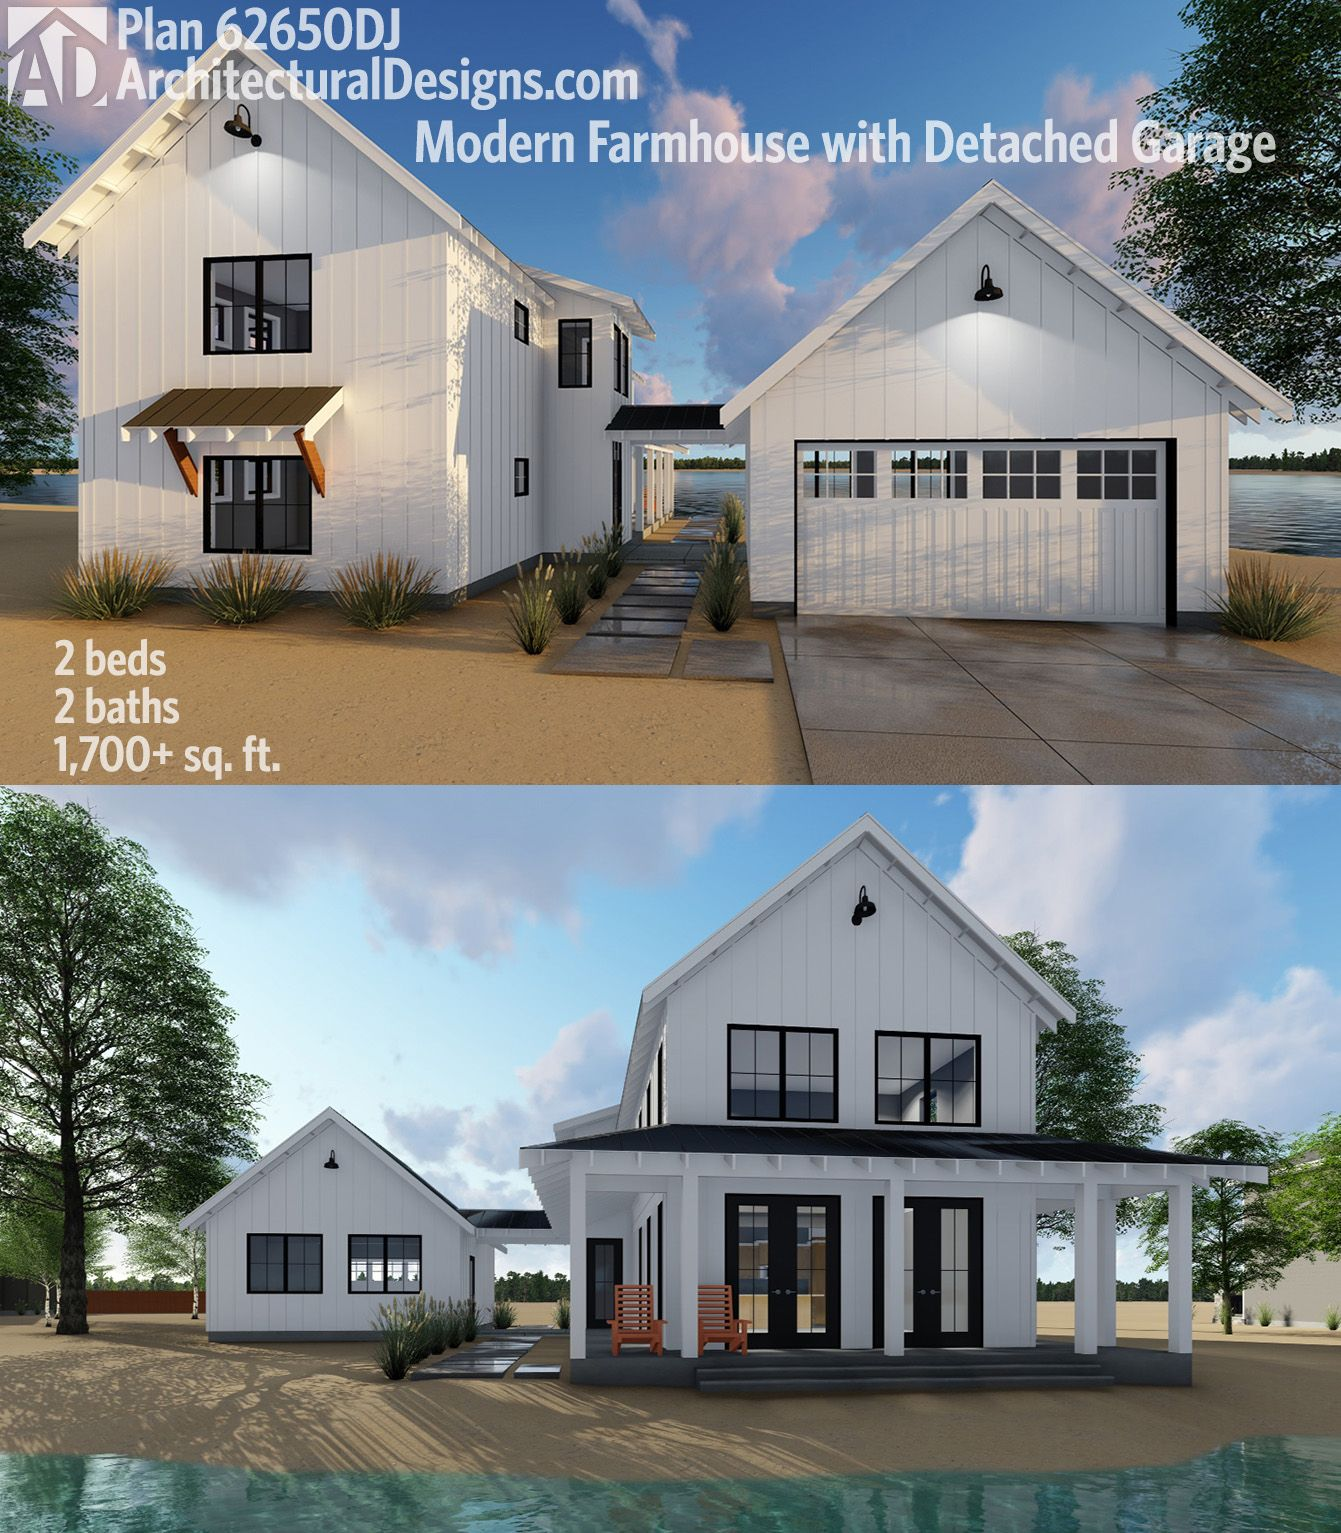 Architectural Designs Modern Farmhouse Plan 62650DJ 2 Beds Baths Cars And